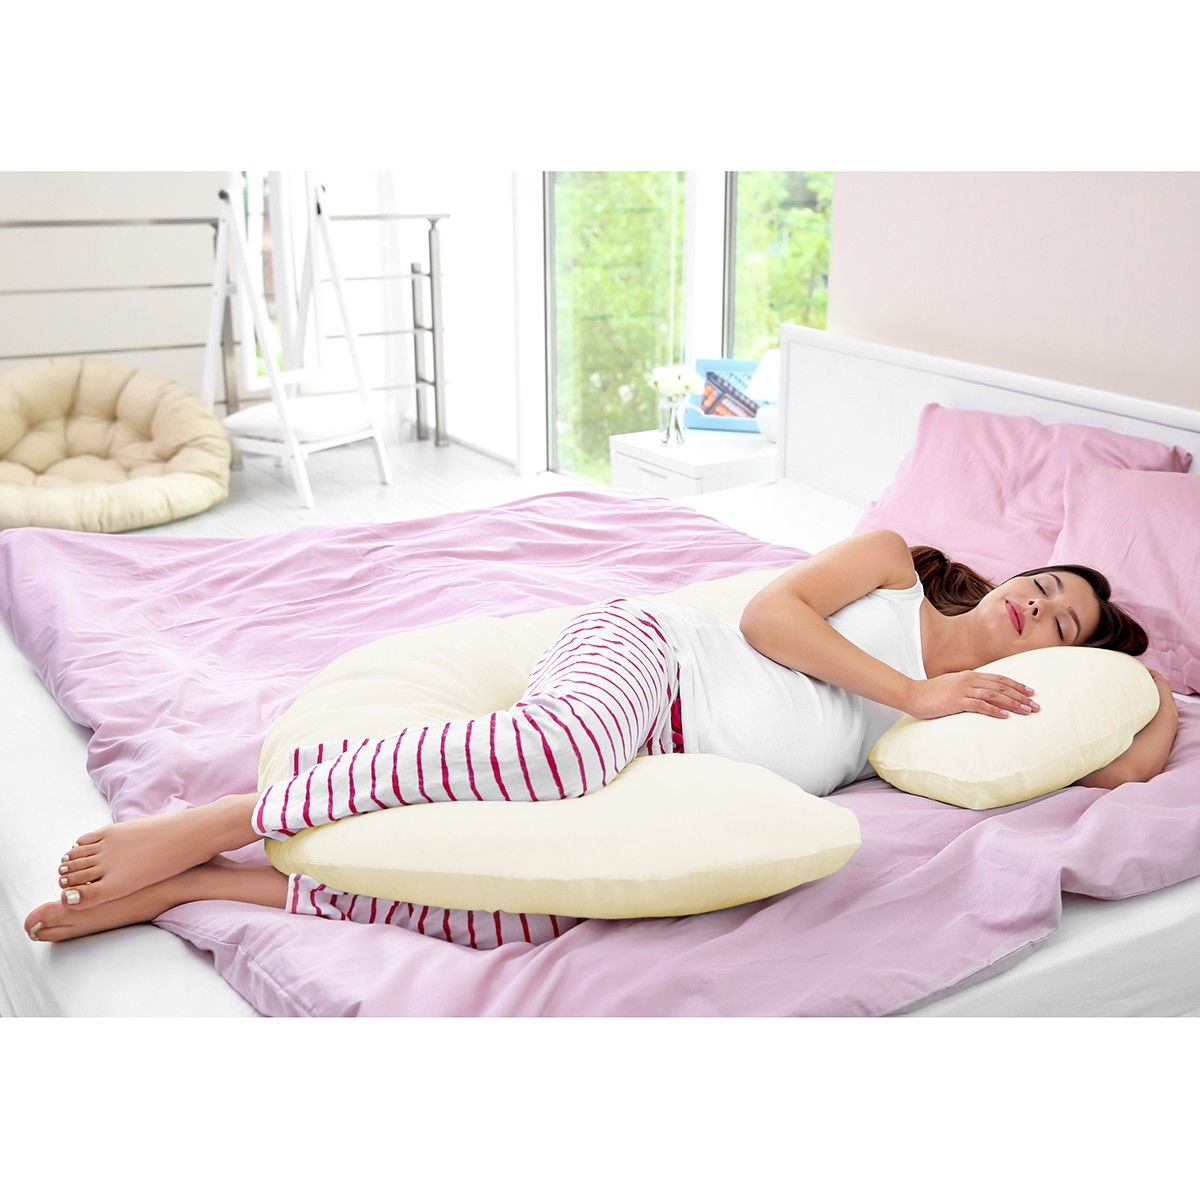 Image of C Shape Total Body Pillow for Expectant Mothers